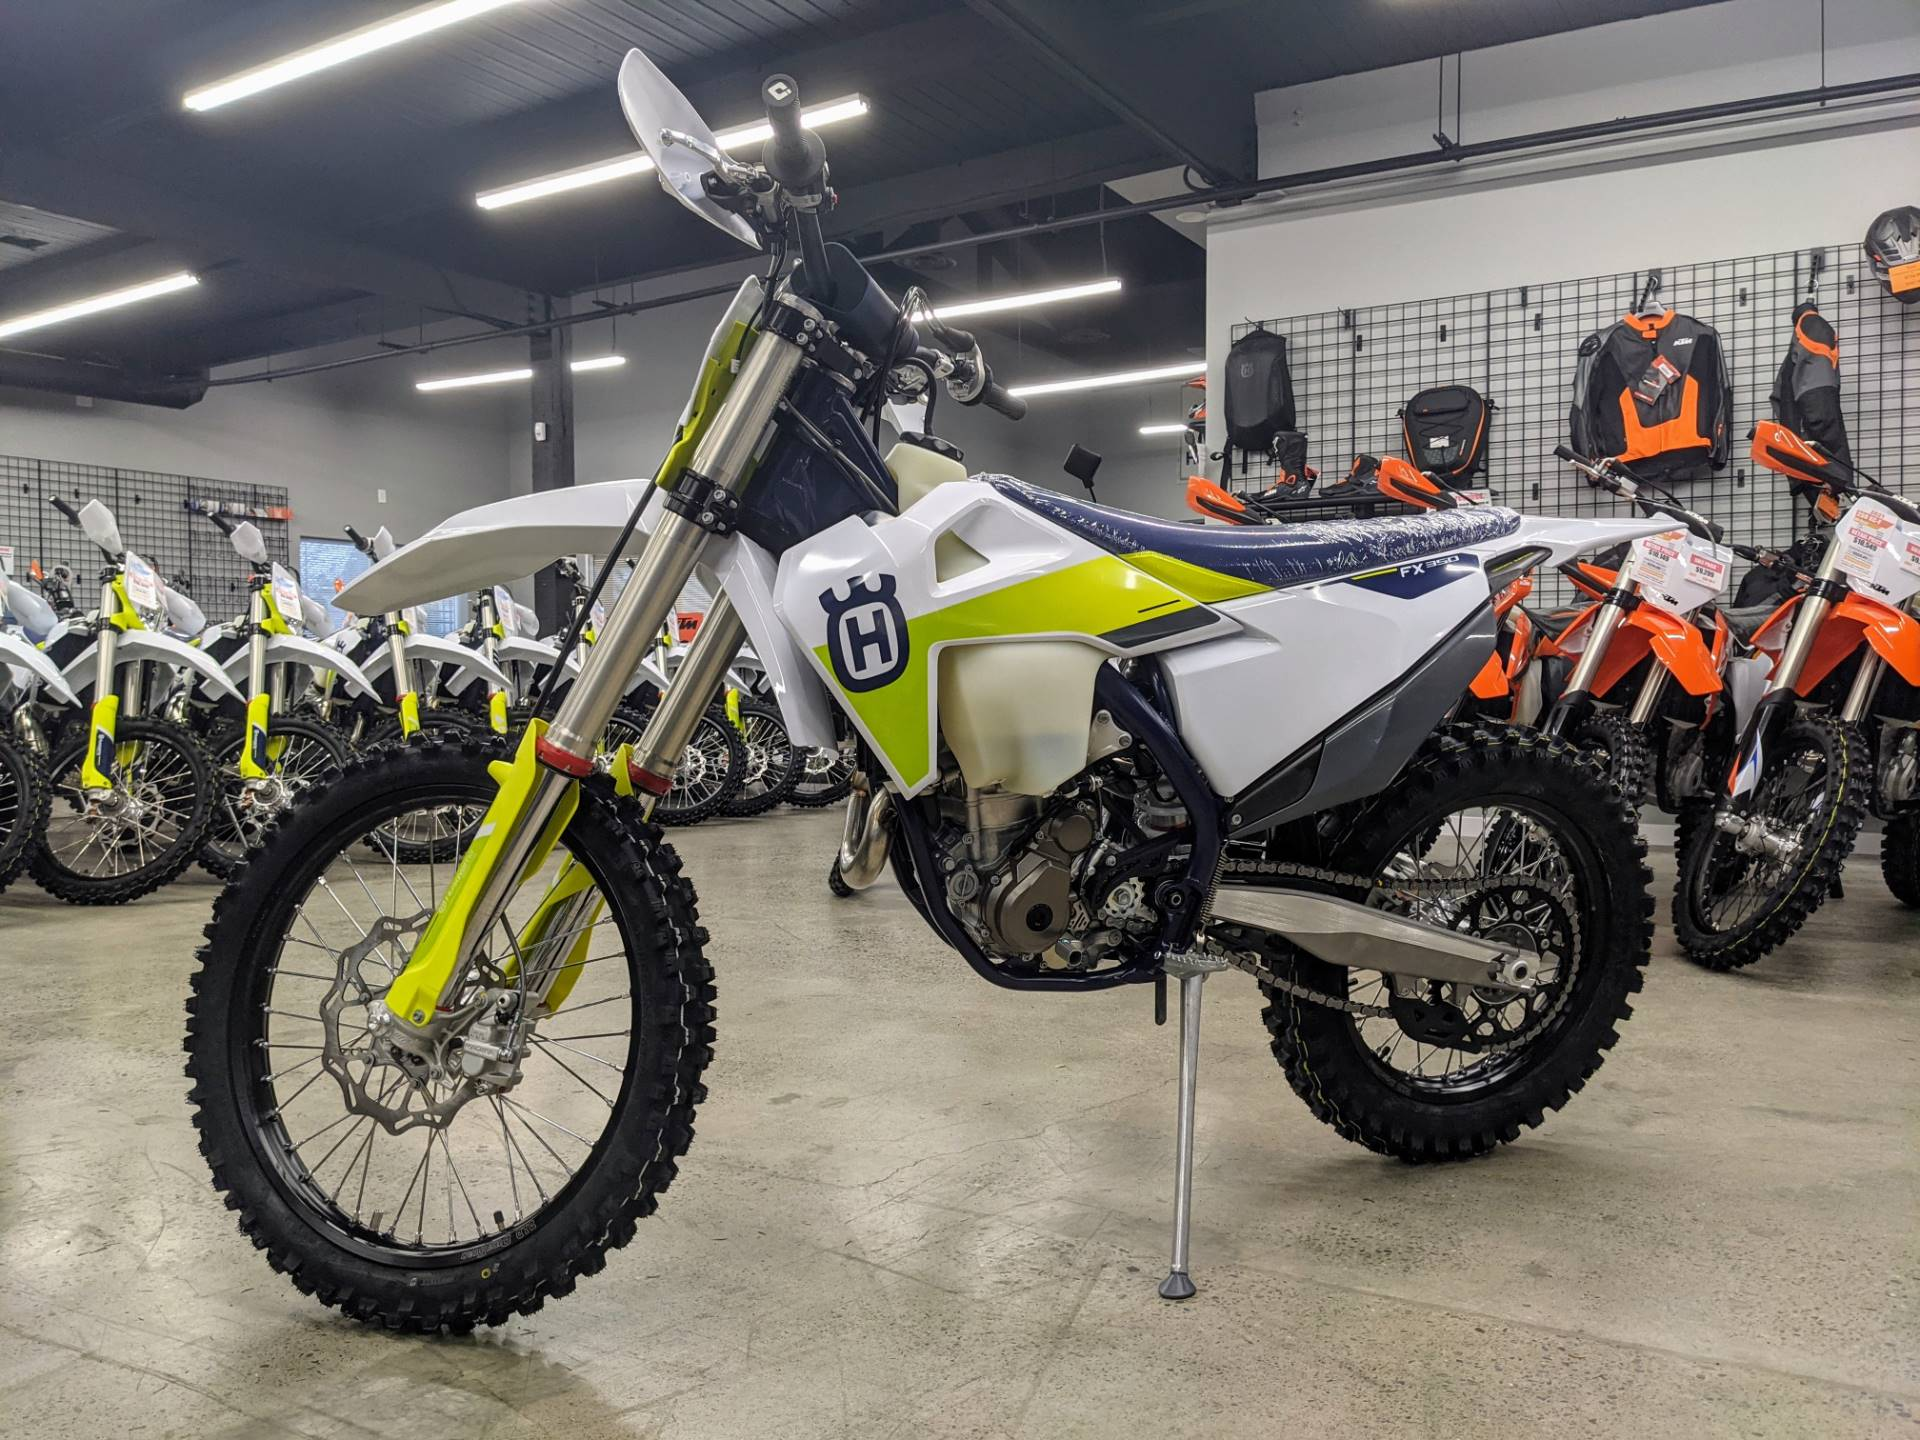 2021 Husqvarna FX 350 in Gresham, Oregon - Photo 1